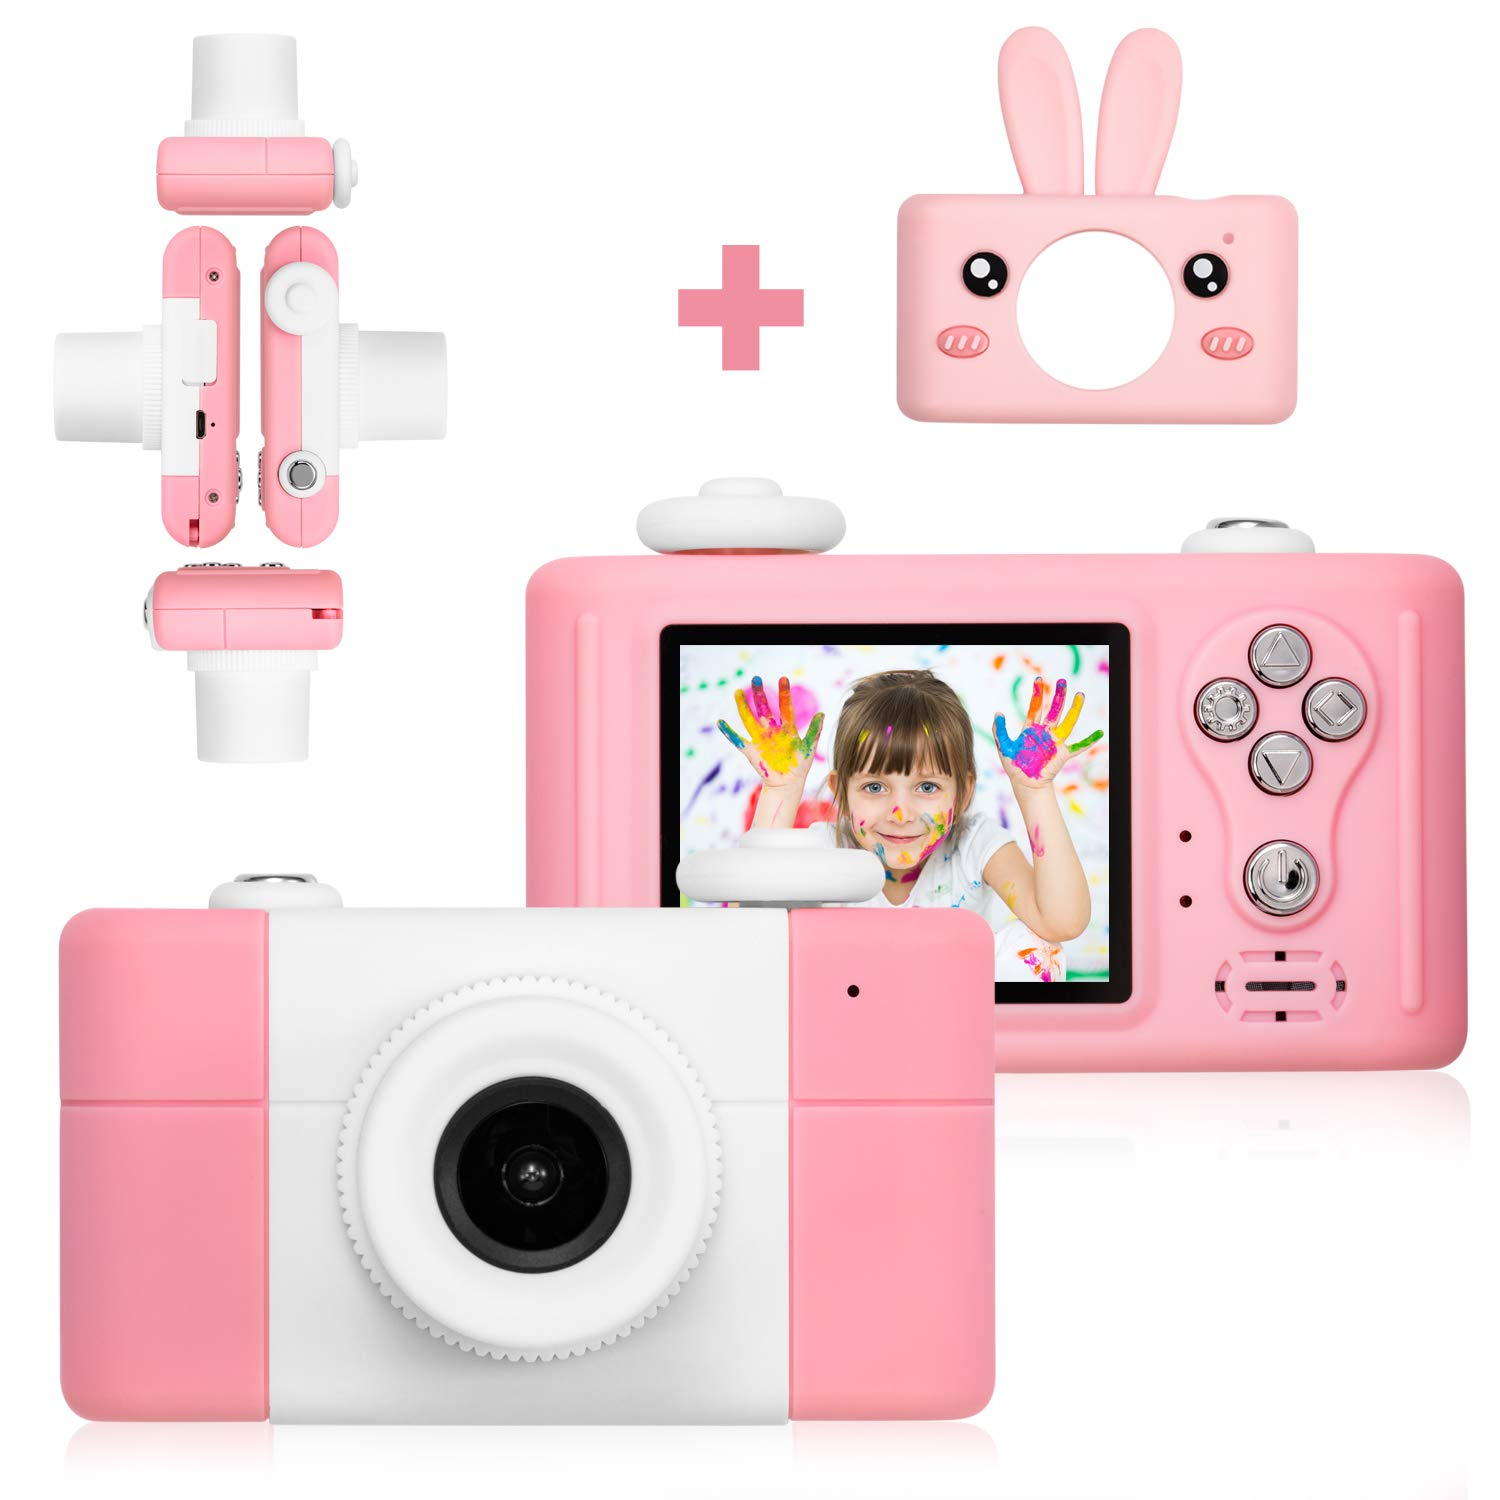 Abdtech Kids Camera Toys for 4-8 Year Old Girls, Rechargeable Children Digital Cameras with Rabbit Cover for Girl Boys Shockproof 8MP Mini Cam with 16G SD Card Best Idea Birthday Party Gift (Pink) by Abdtech (Image #3)